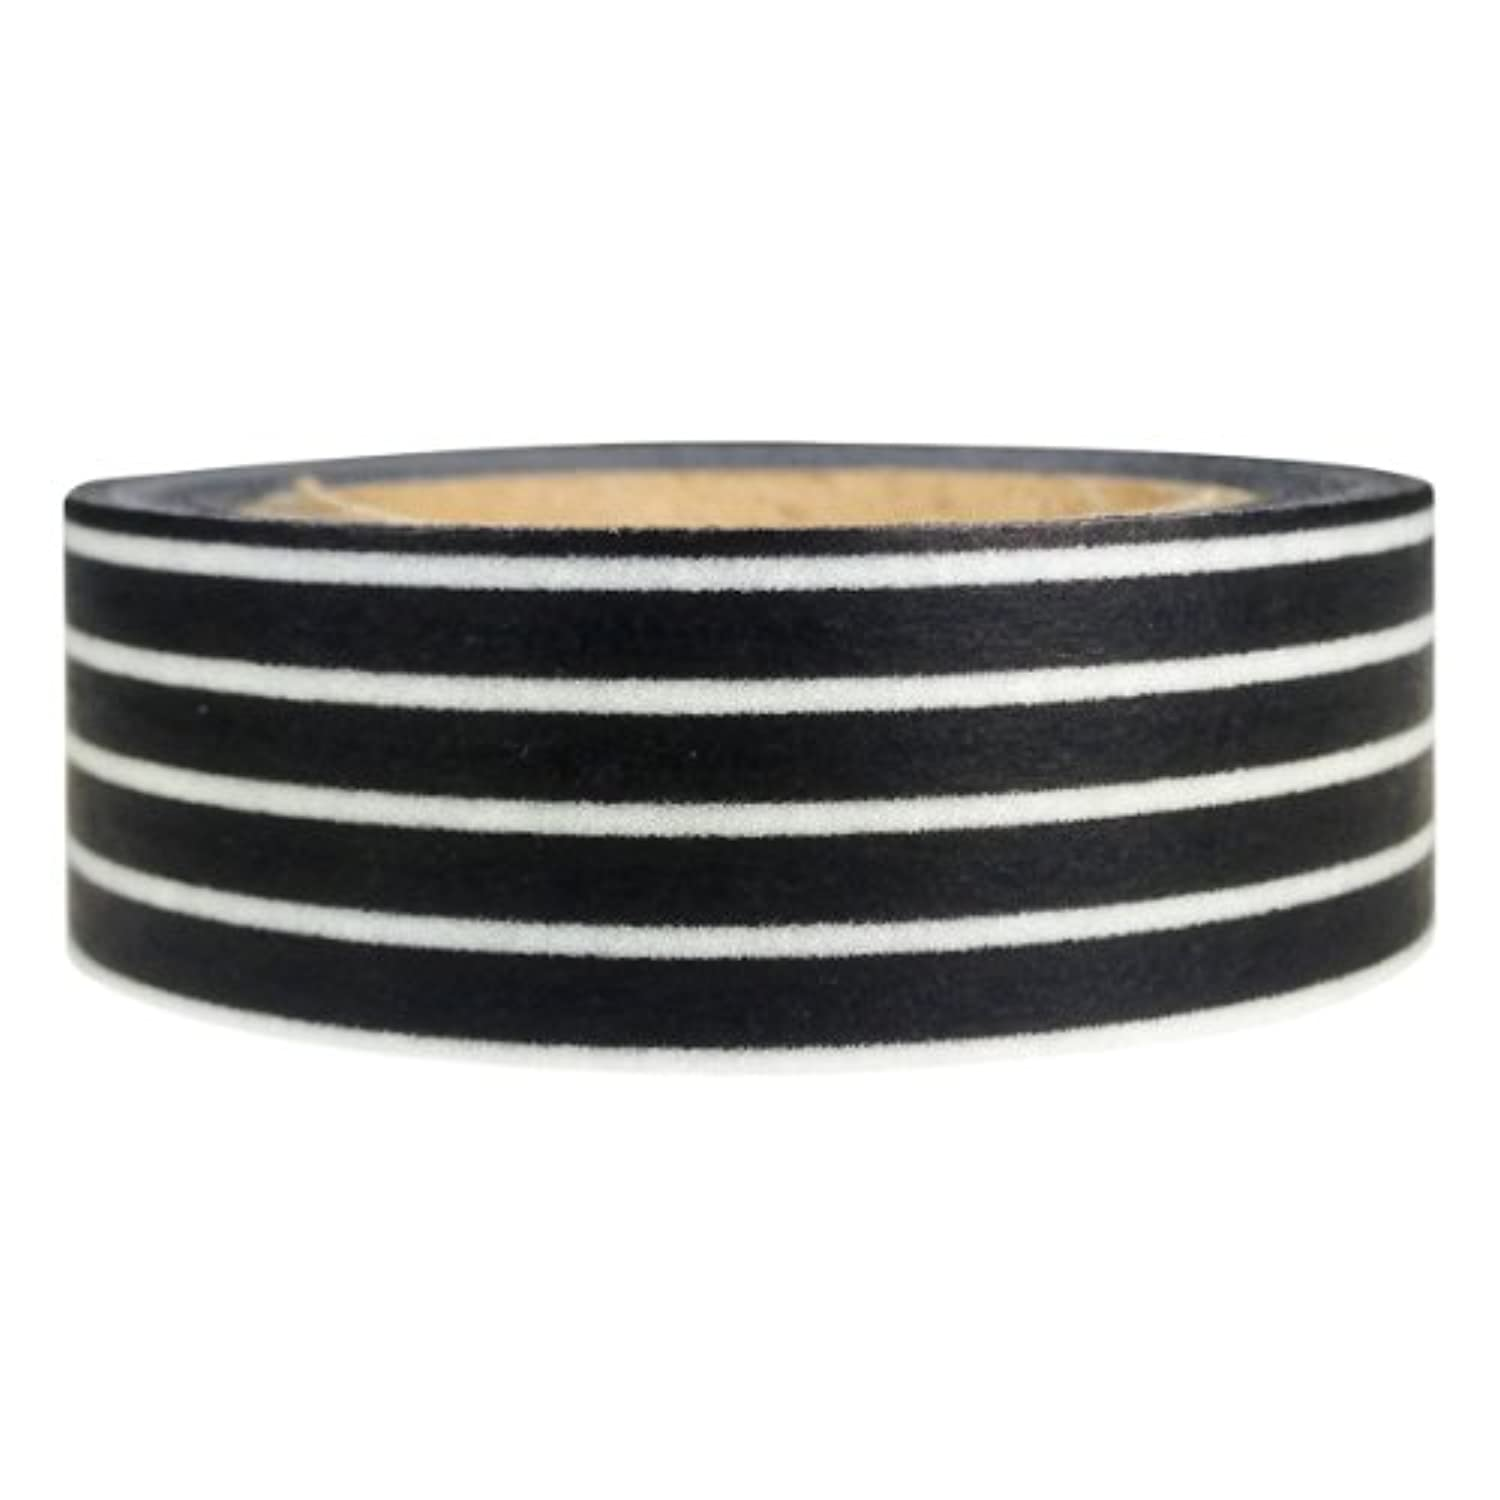 AllyDrew Striped Japanese Washi Masking Tape - Black Long Stripe